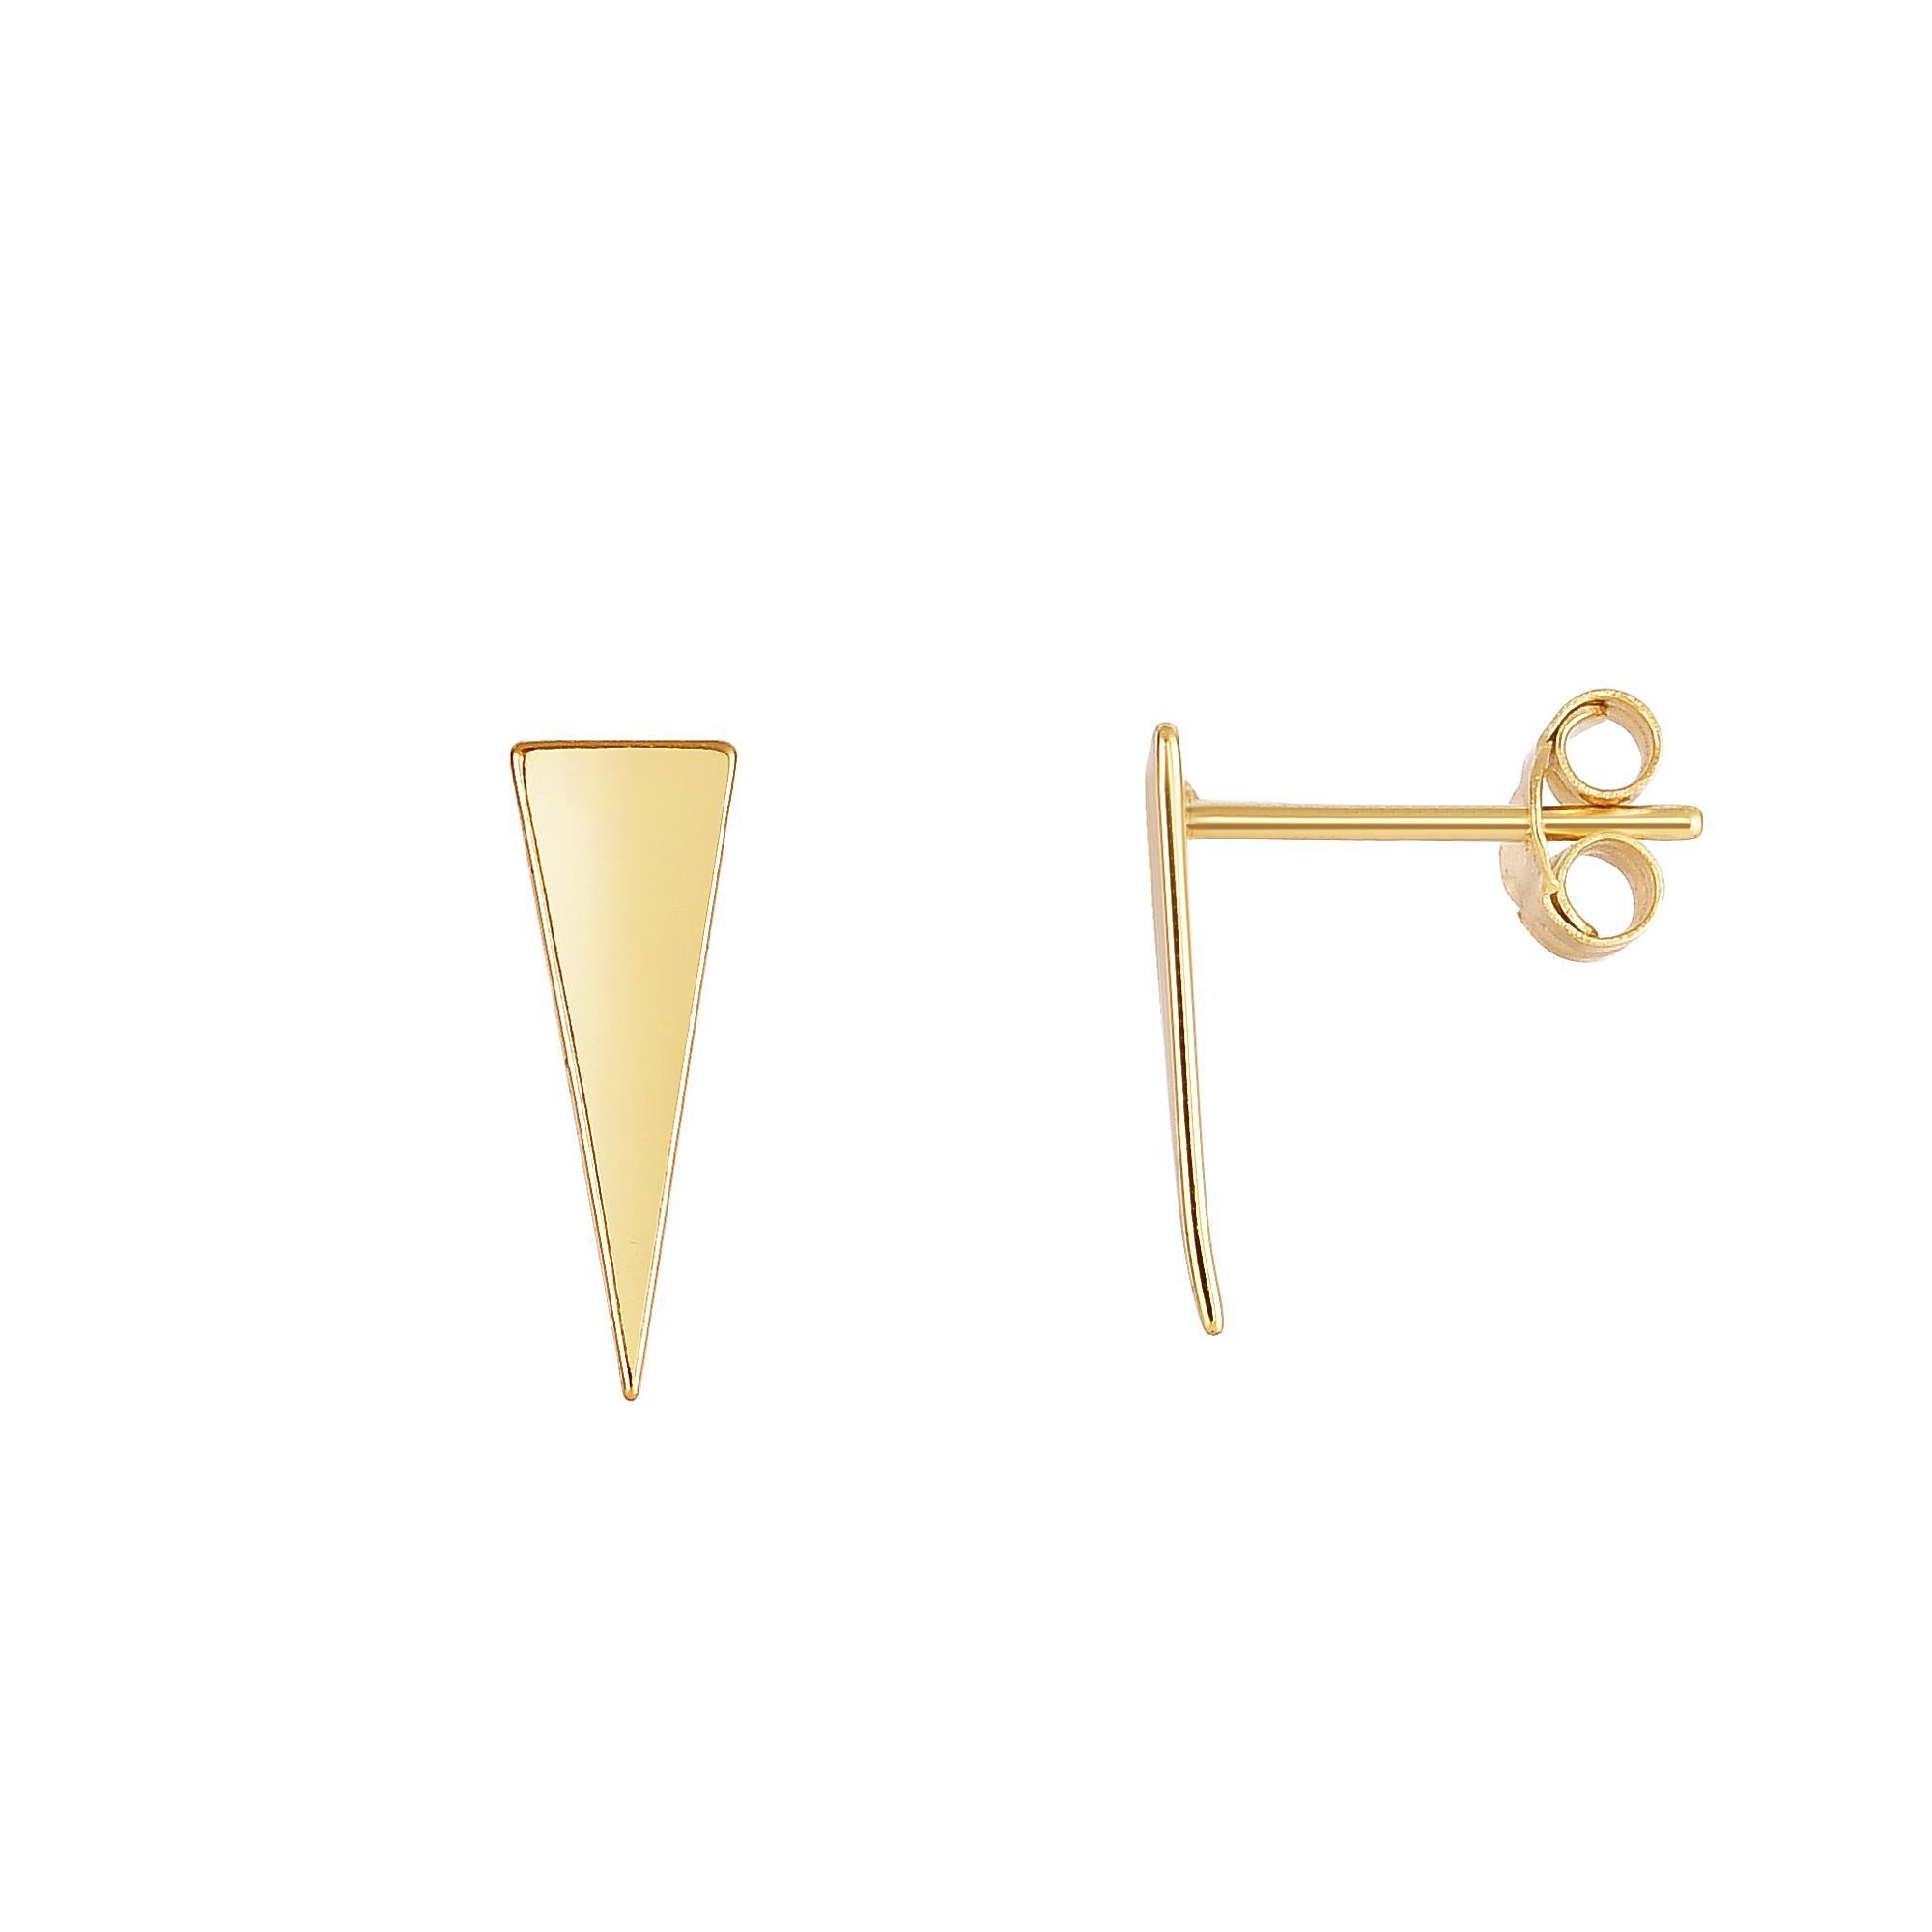 jewellery pin clasp earrings ambra products image lapel